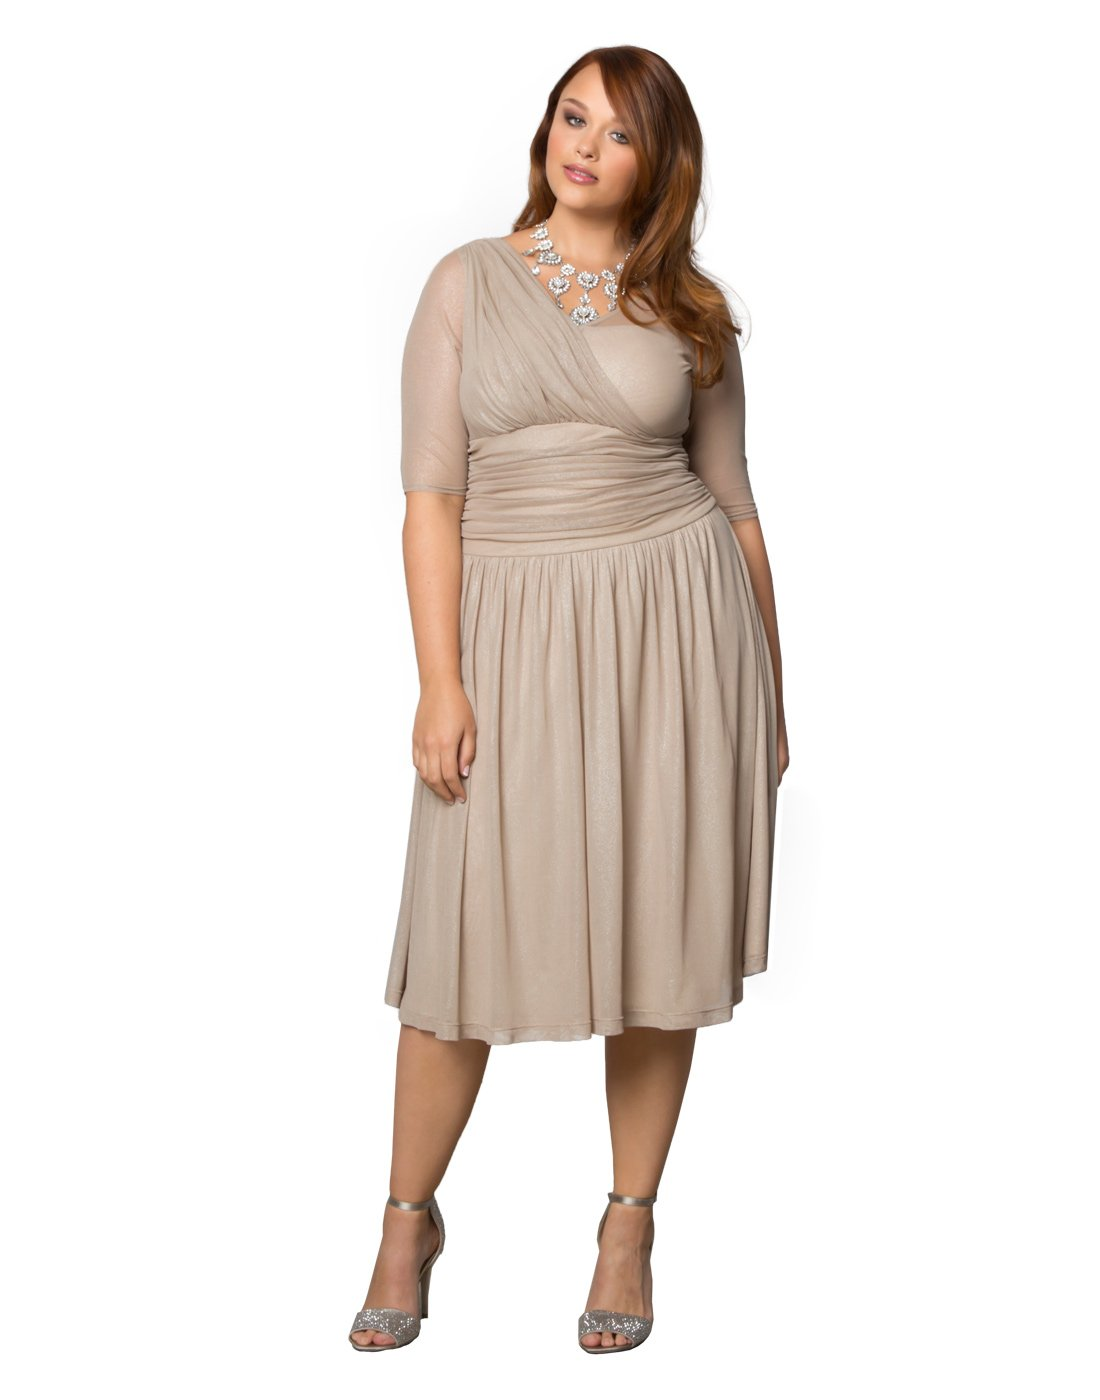 Kiyonna Women's Plus Size Limited Edition Glimmer Cocktail Dress 1X Champagne by Kiyonna Clothing